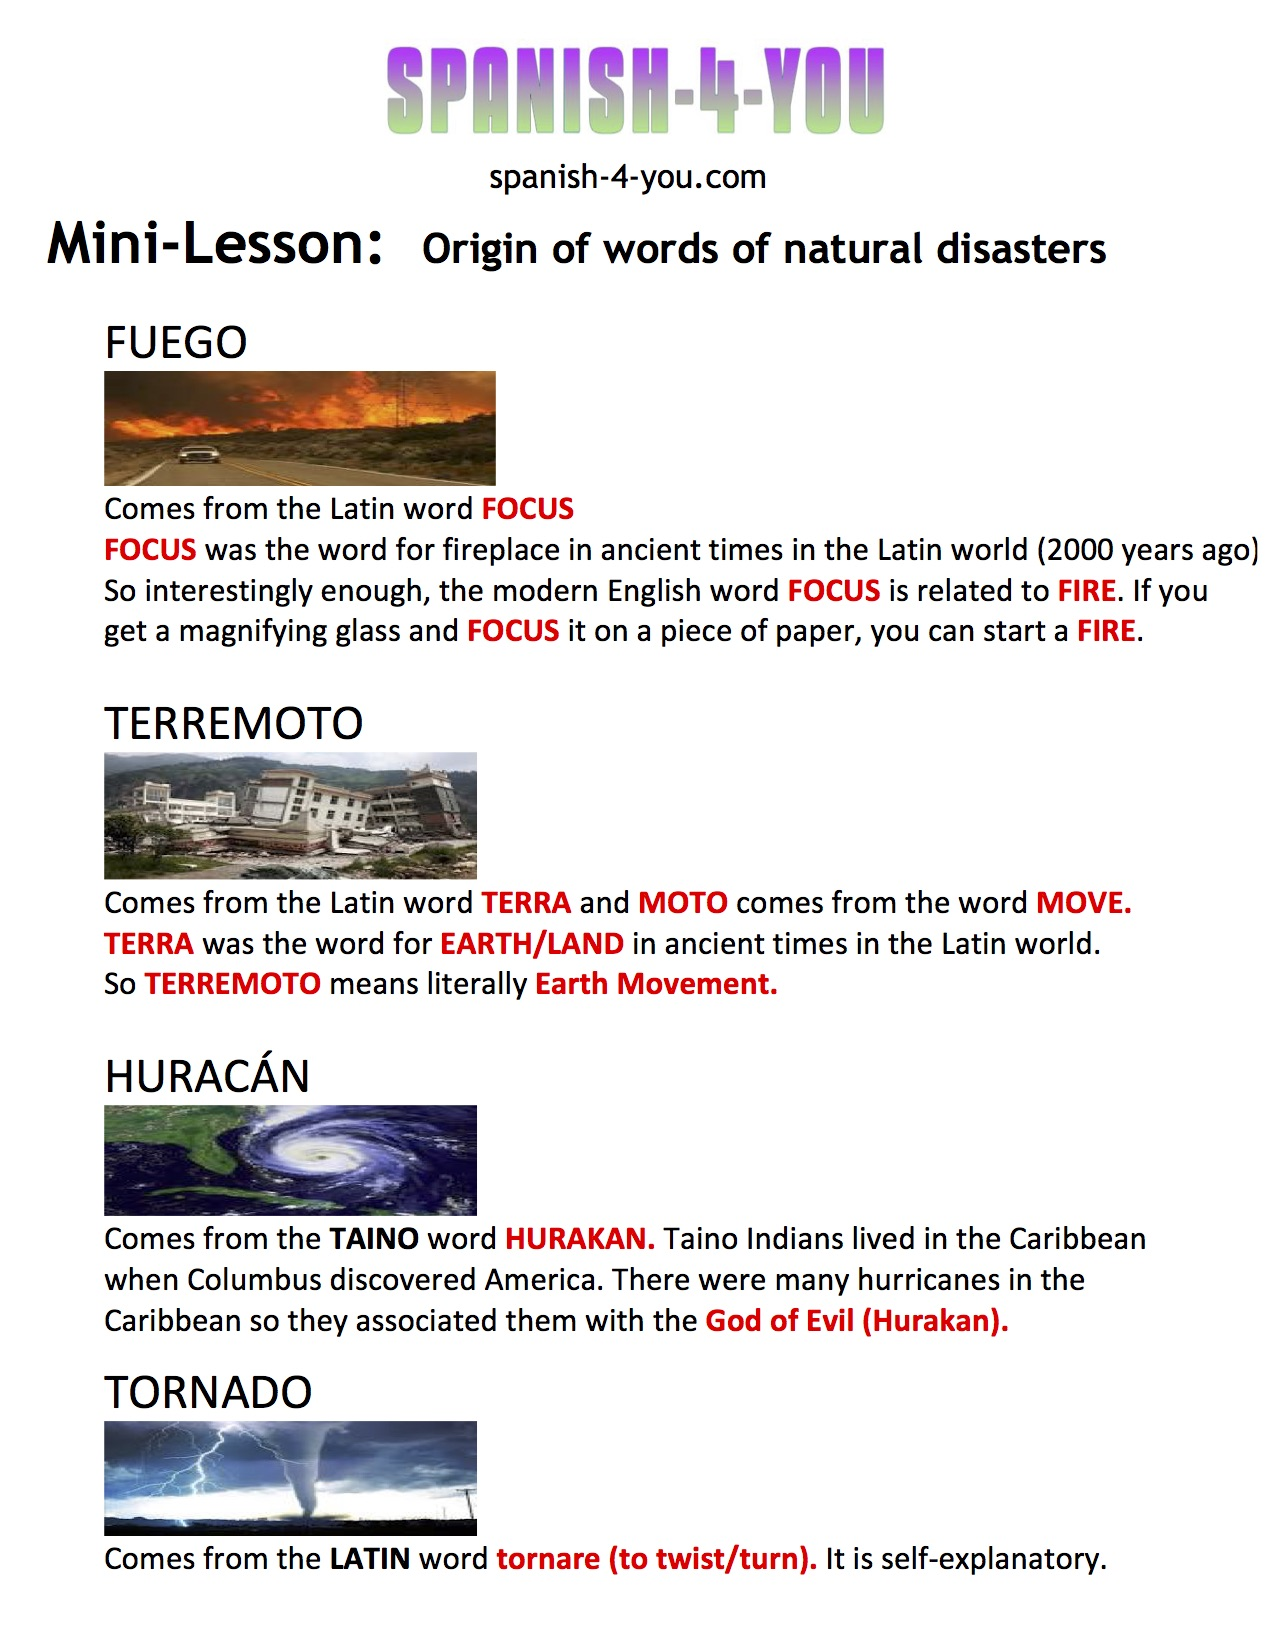 Spanish 4 You Blog: Spanish-4-You free mini-lesson: Natural Disasters